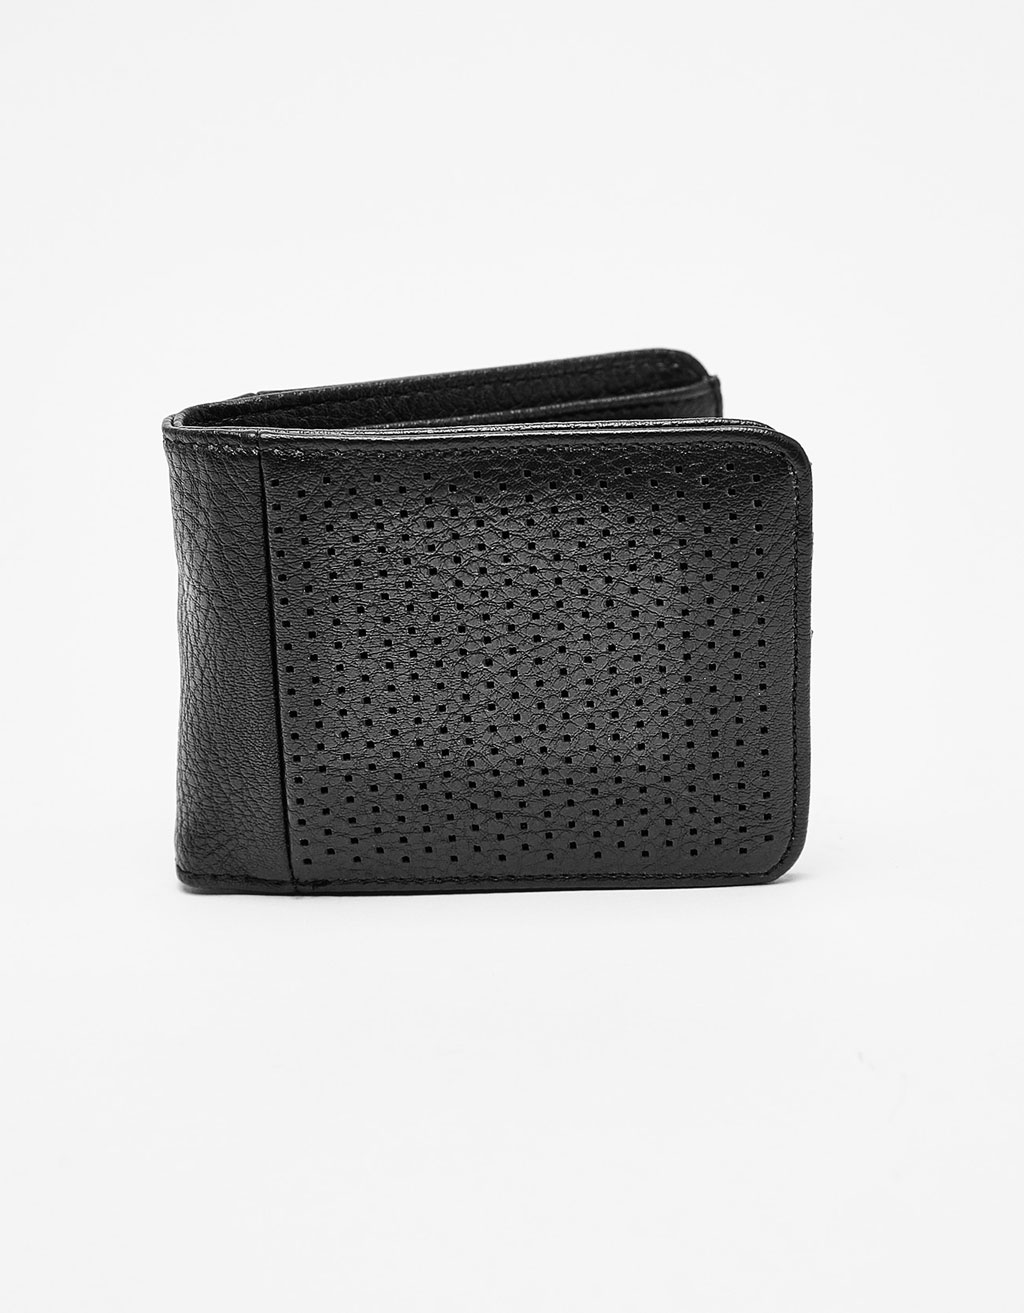 Coin purse with perforations